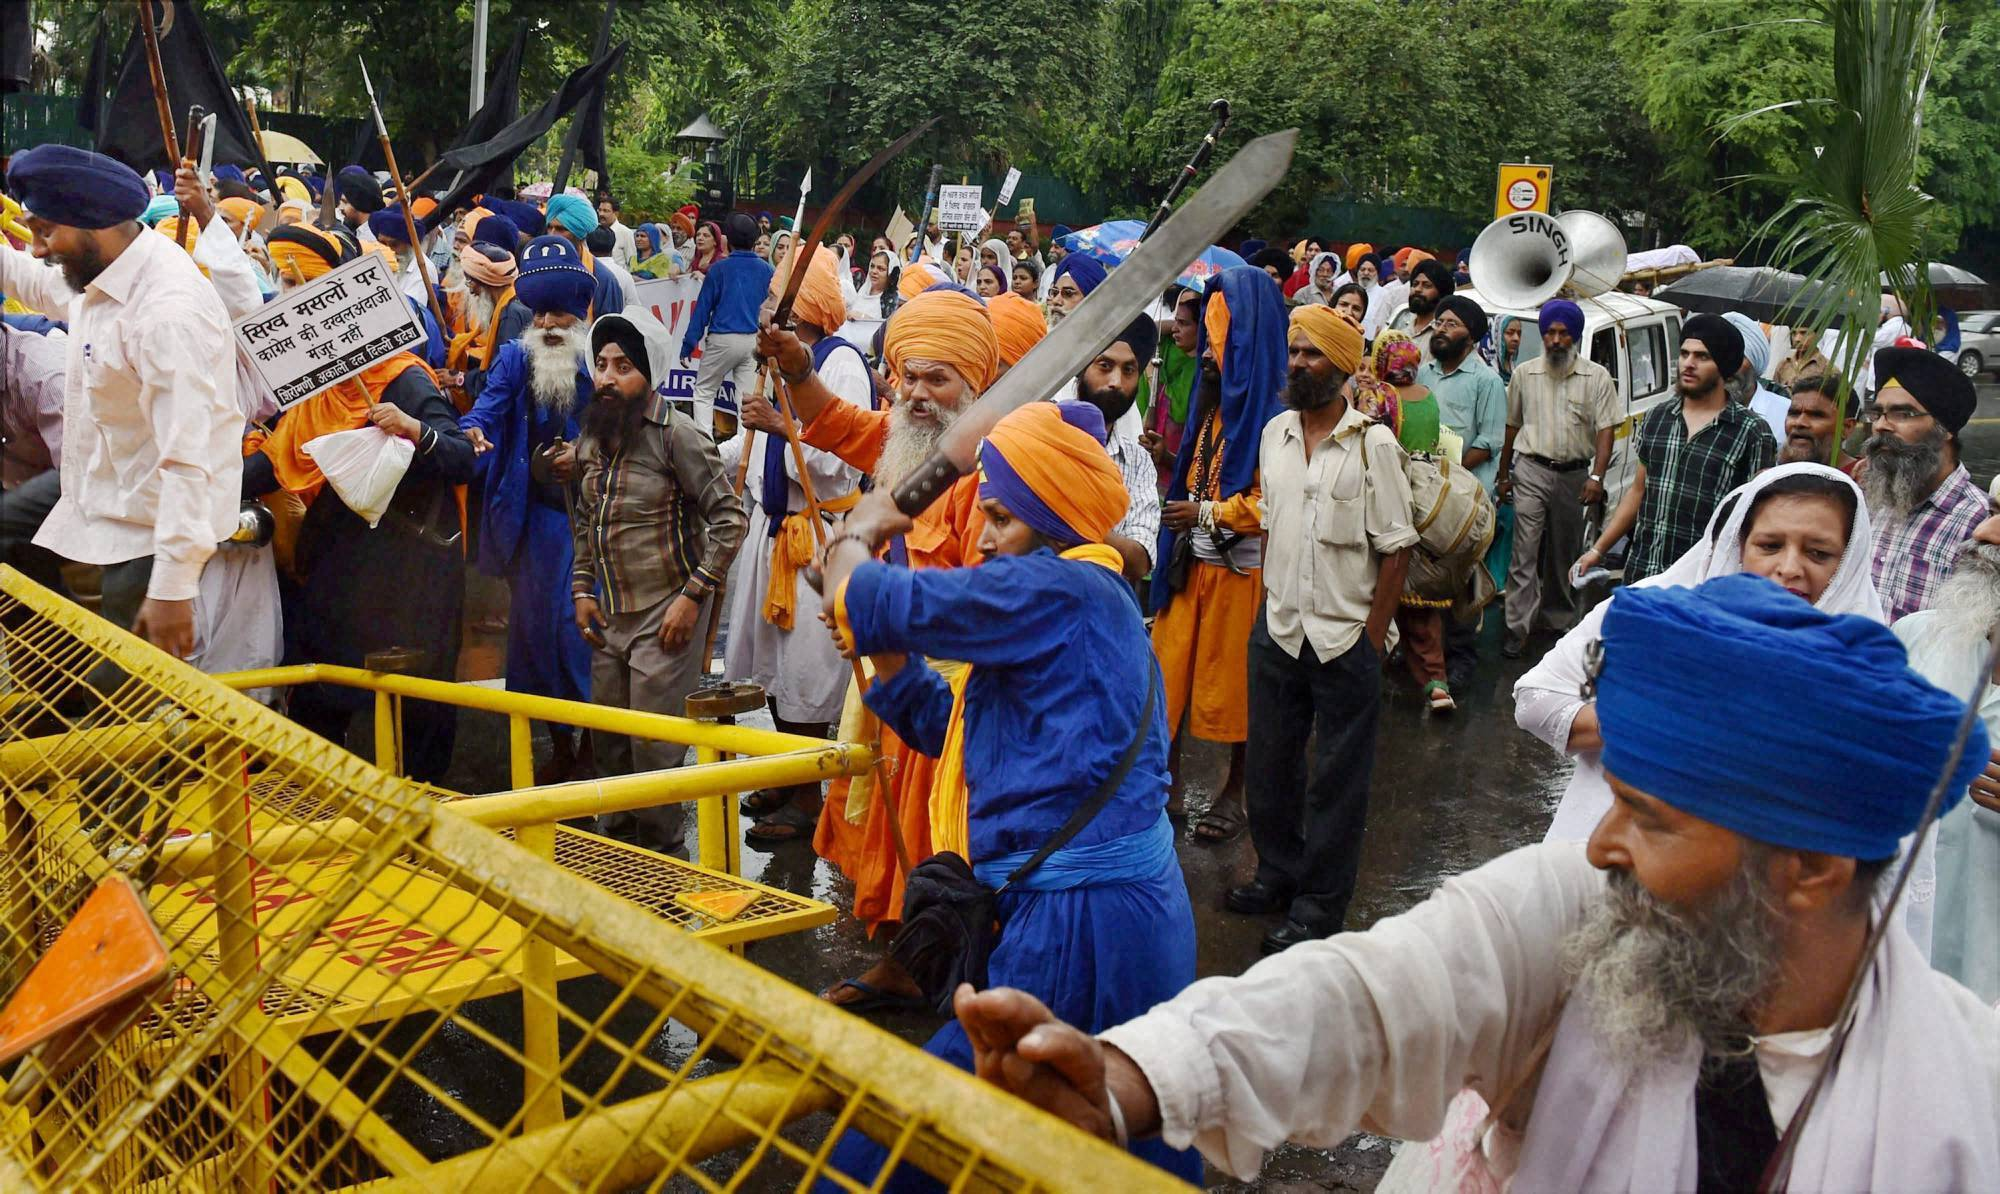 Police, use water, cannons, disperse, Shiromani Akali Dal-Badal, activists, AICC, New Delhi, legislation, separate, Sikh committee, gurudwaras, Haryana